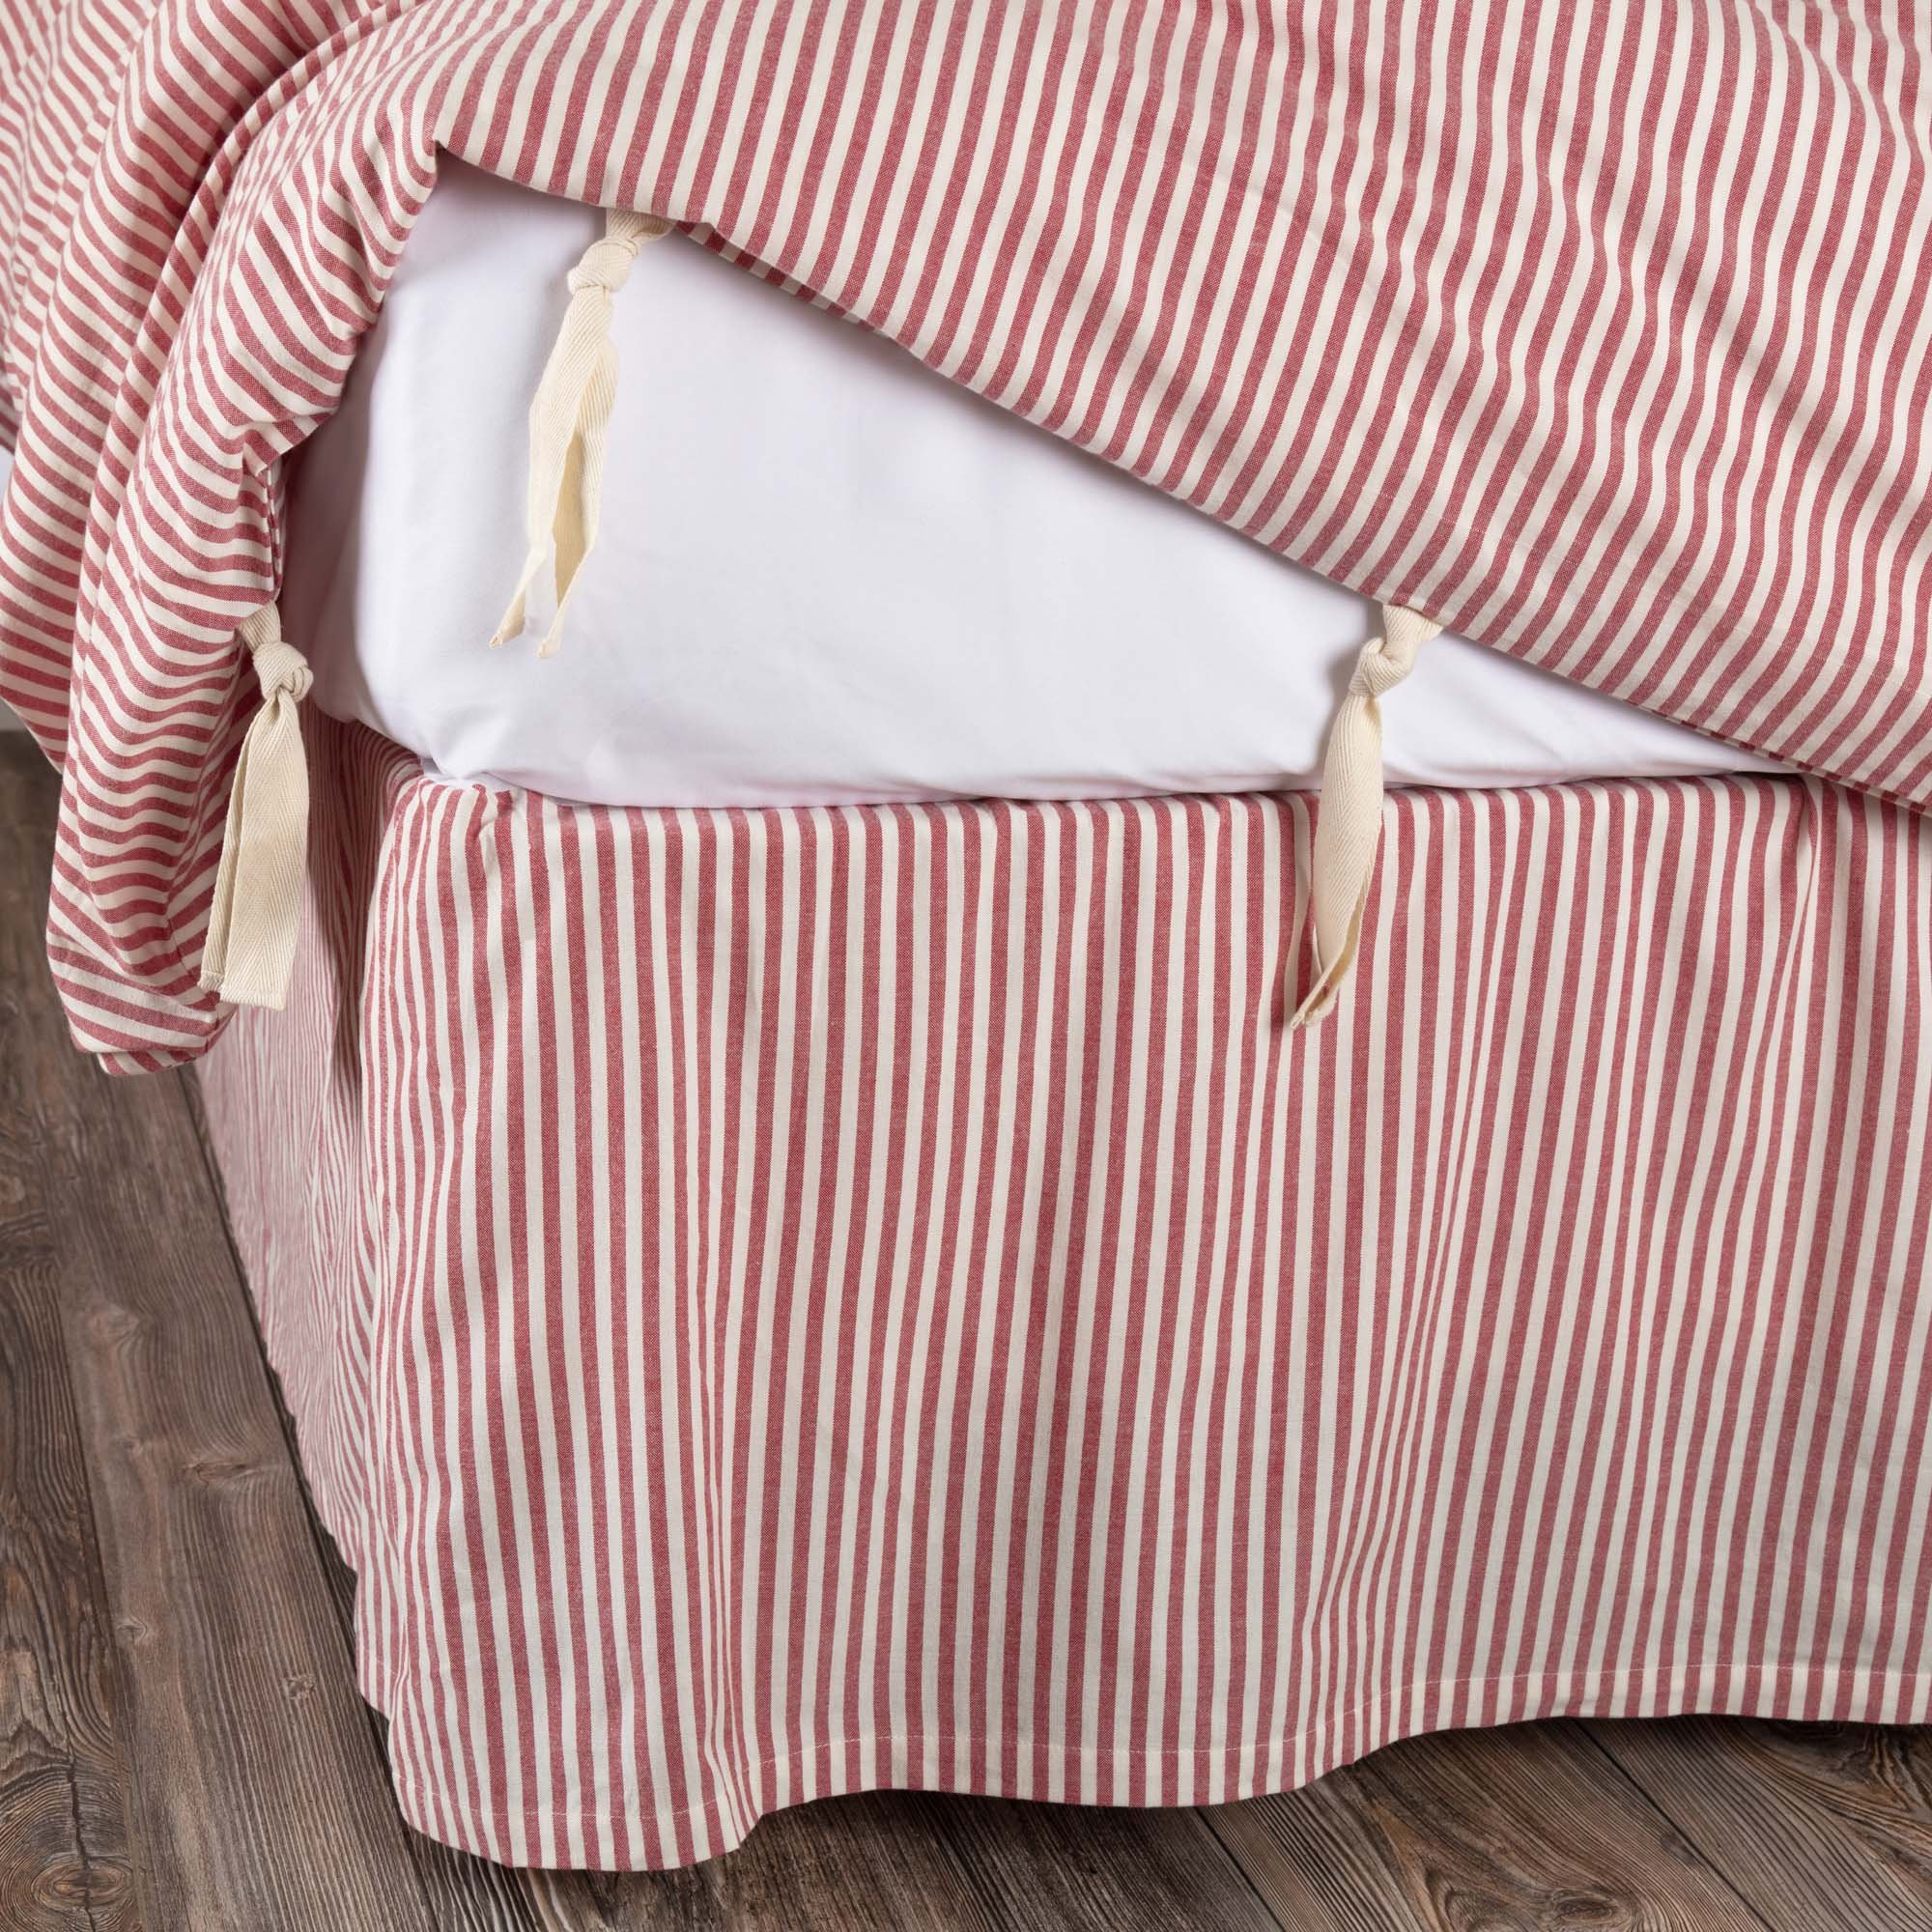 Piper Classics Farmhouse Ticking Stripe Red Queen Bed Skirt, 60'' x 80'', w/16 Drop, Tailored Dust Ruffle